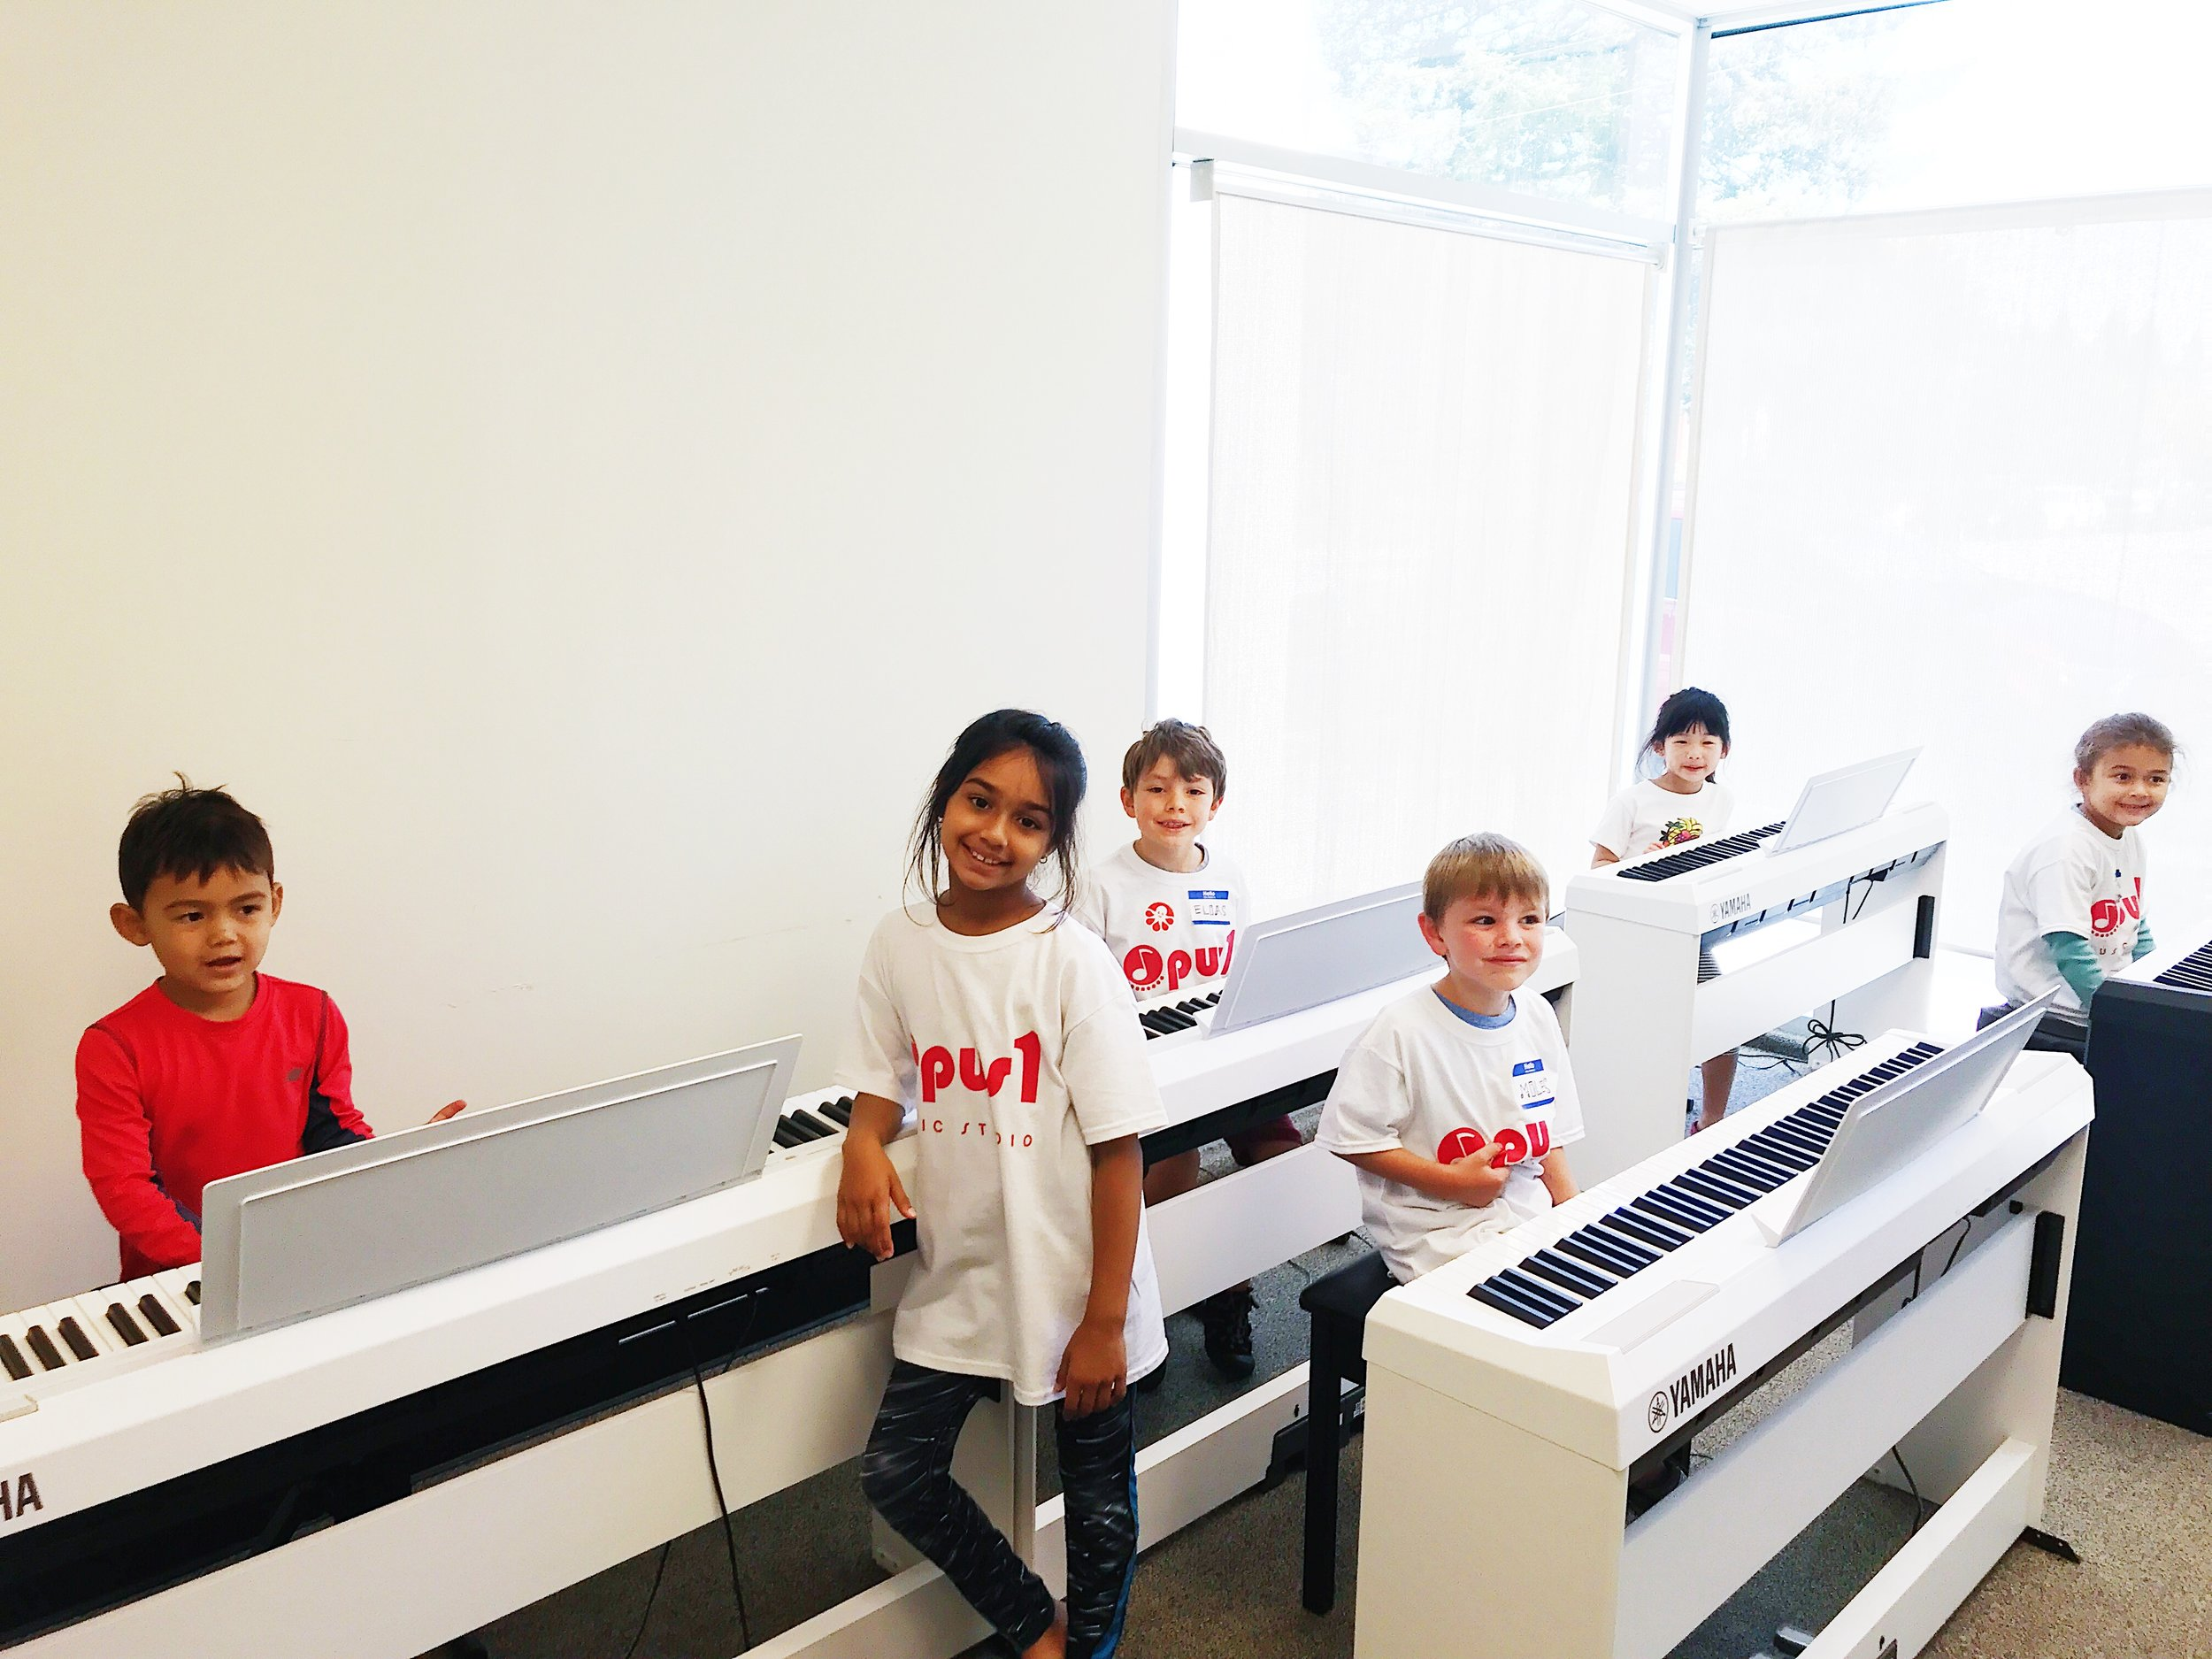 My First Piano - FOR AGES:5 - 7 yearsLOCATION:Palo Alto CampusSTARTS:January 7, 2020(ongoing enrollment until 4th class)ENDS:March 28, 2020________TUITION:$490 (12 sessions)(Includes registration and materials)